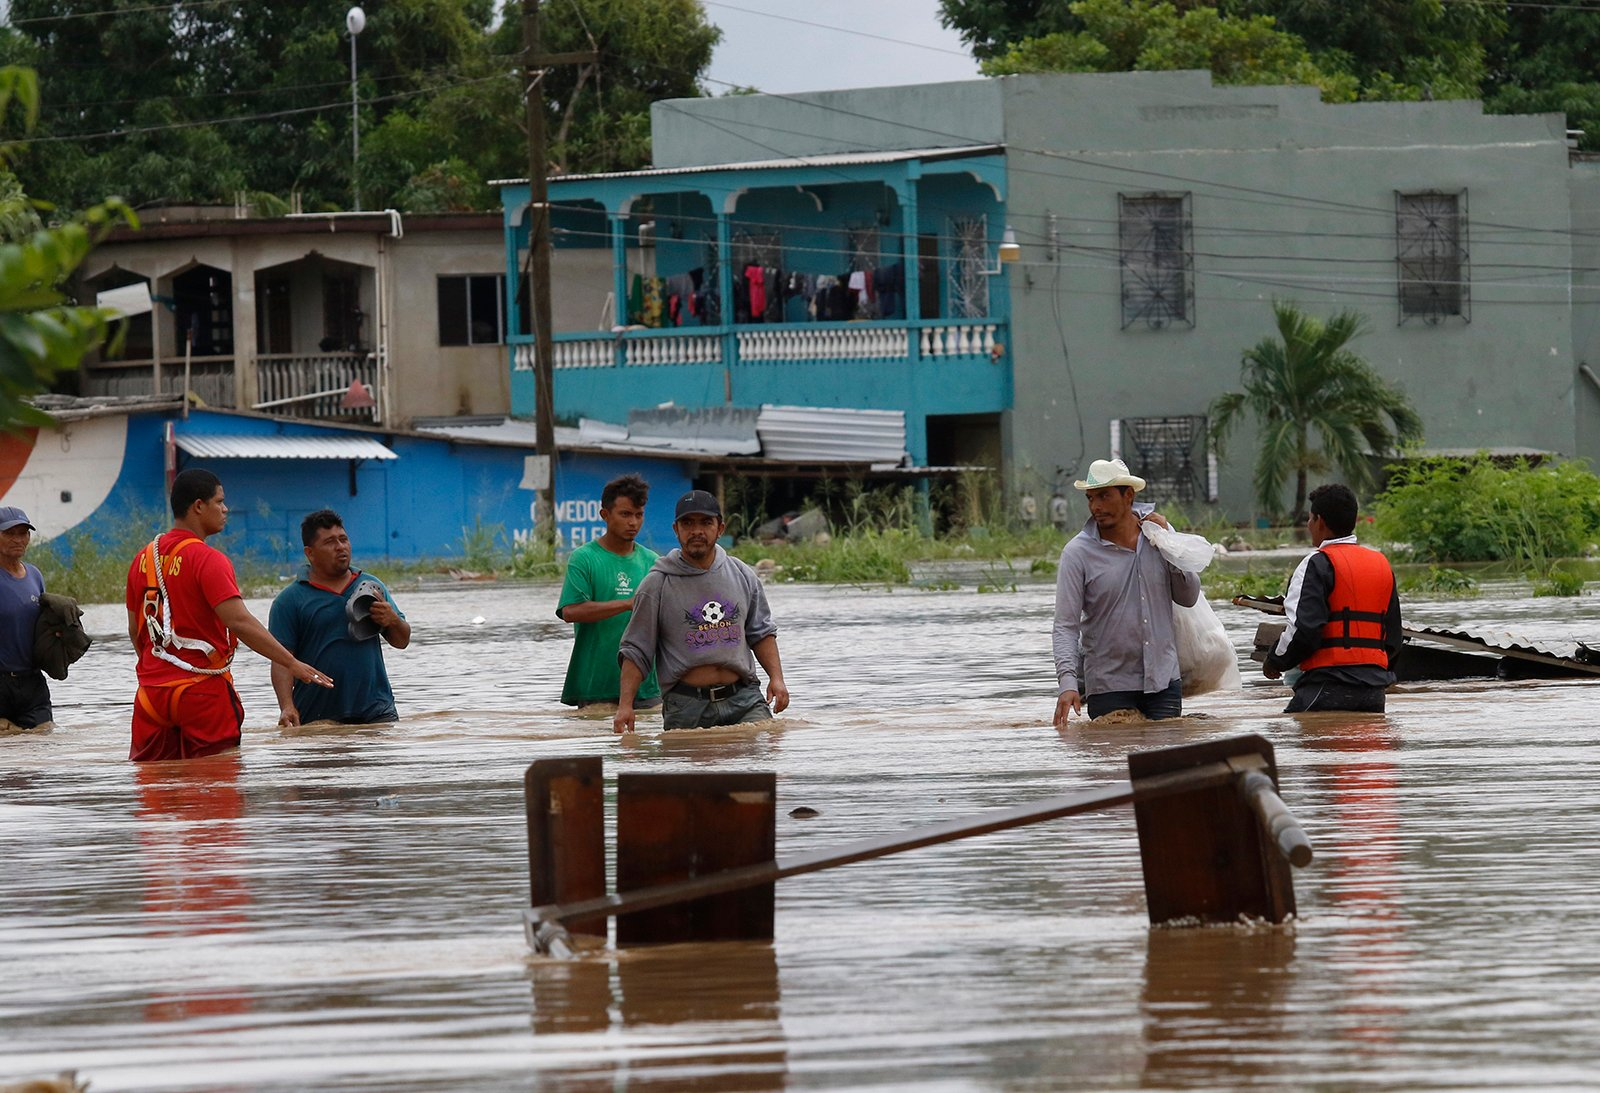 As hurricanes belt Honduras, Christian aid group fights not just water but corruption - Religion News Service